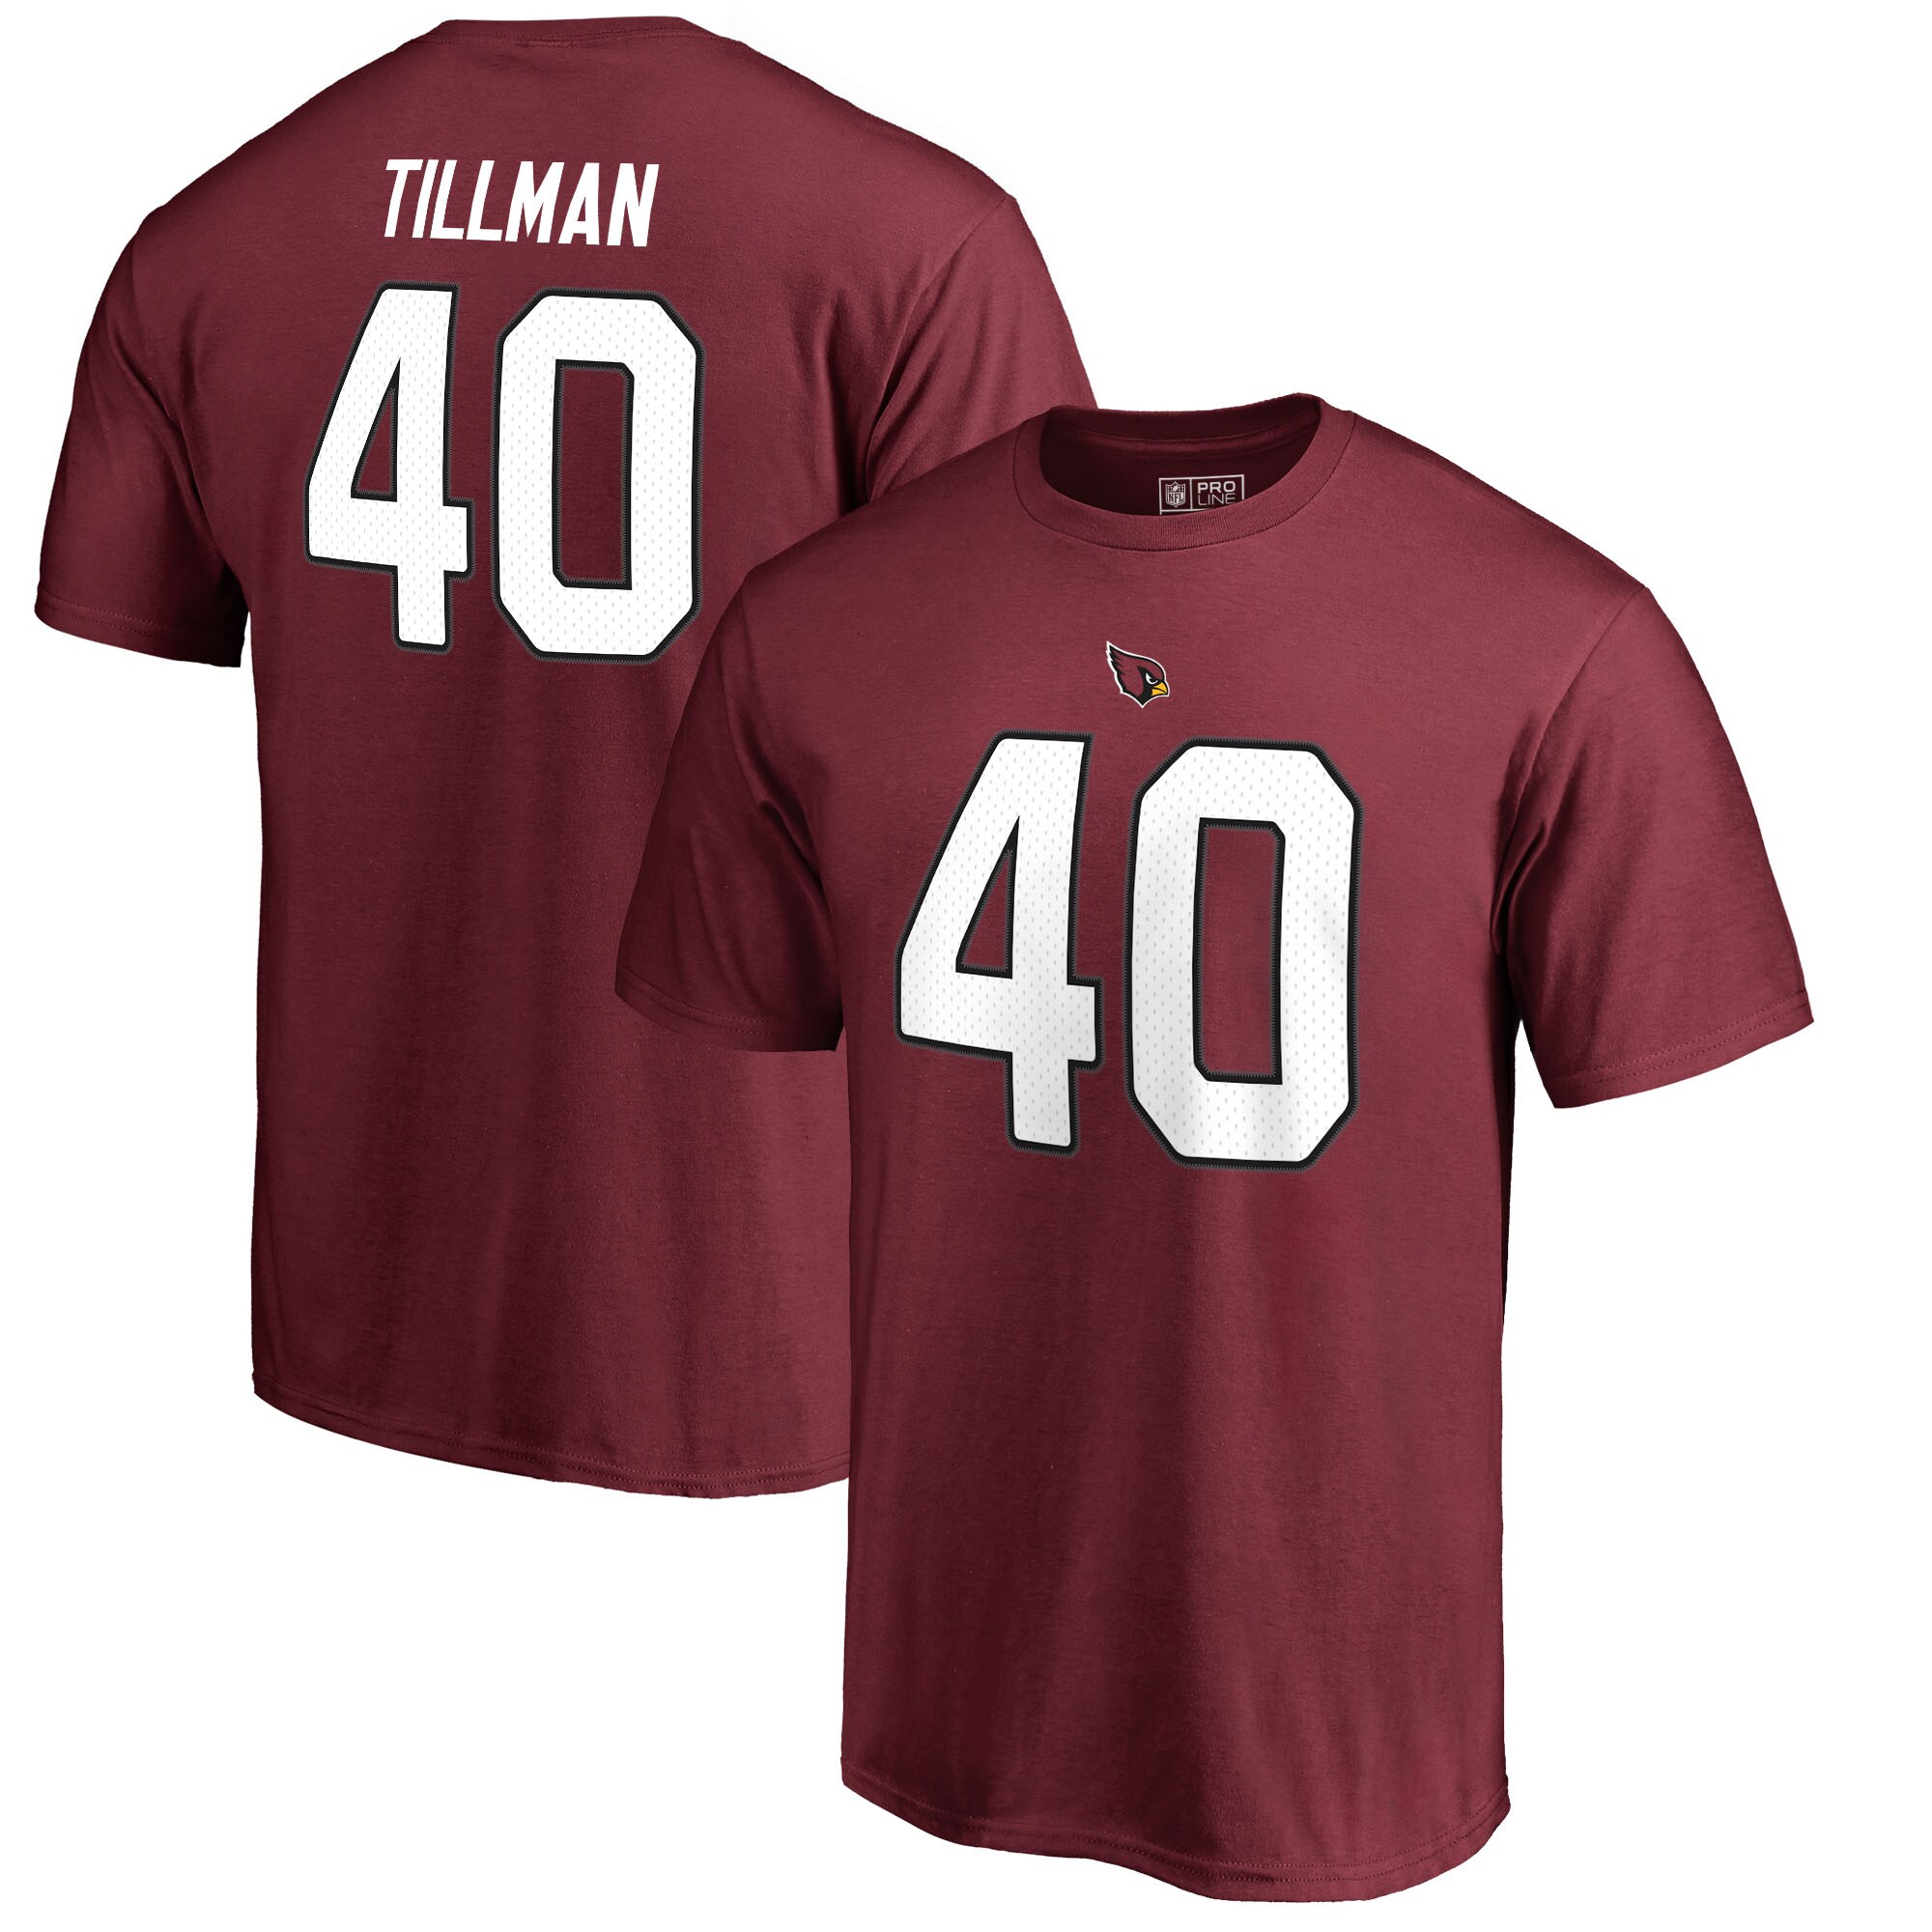 Pat Tillman Arizona Cardinals NFL Pro Line by Fanatics Branded Retired Player Authentic Stack Name & Number T-Shirt - Cardinal